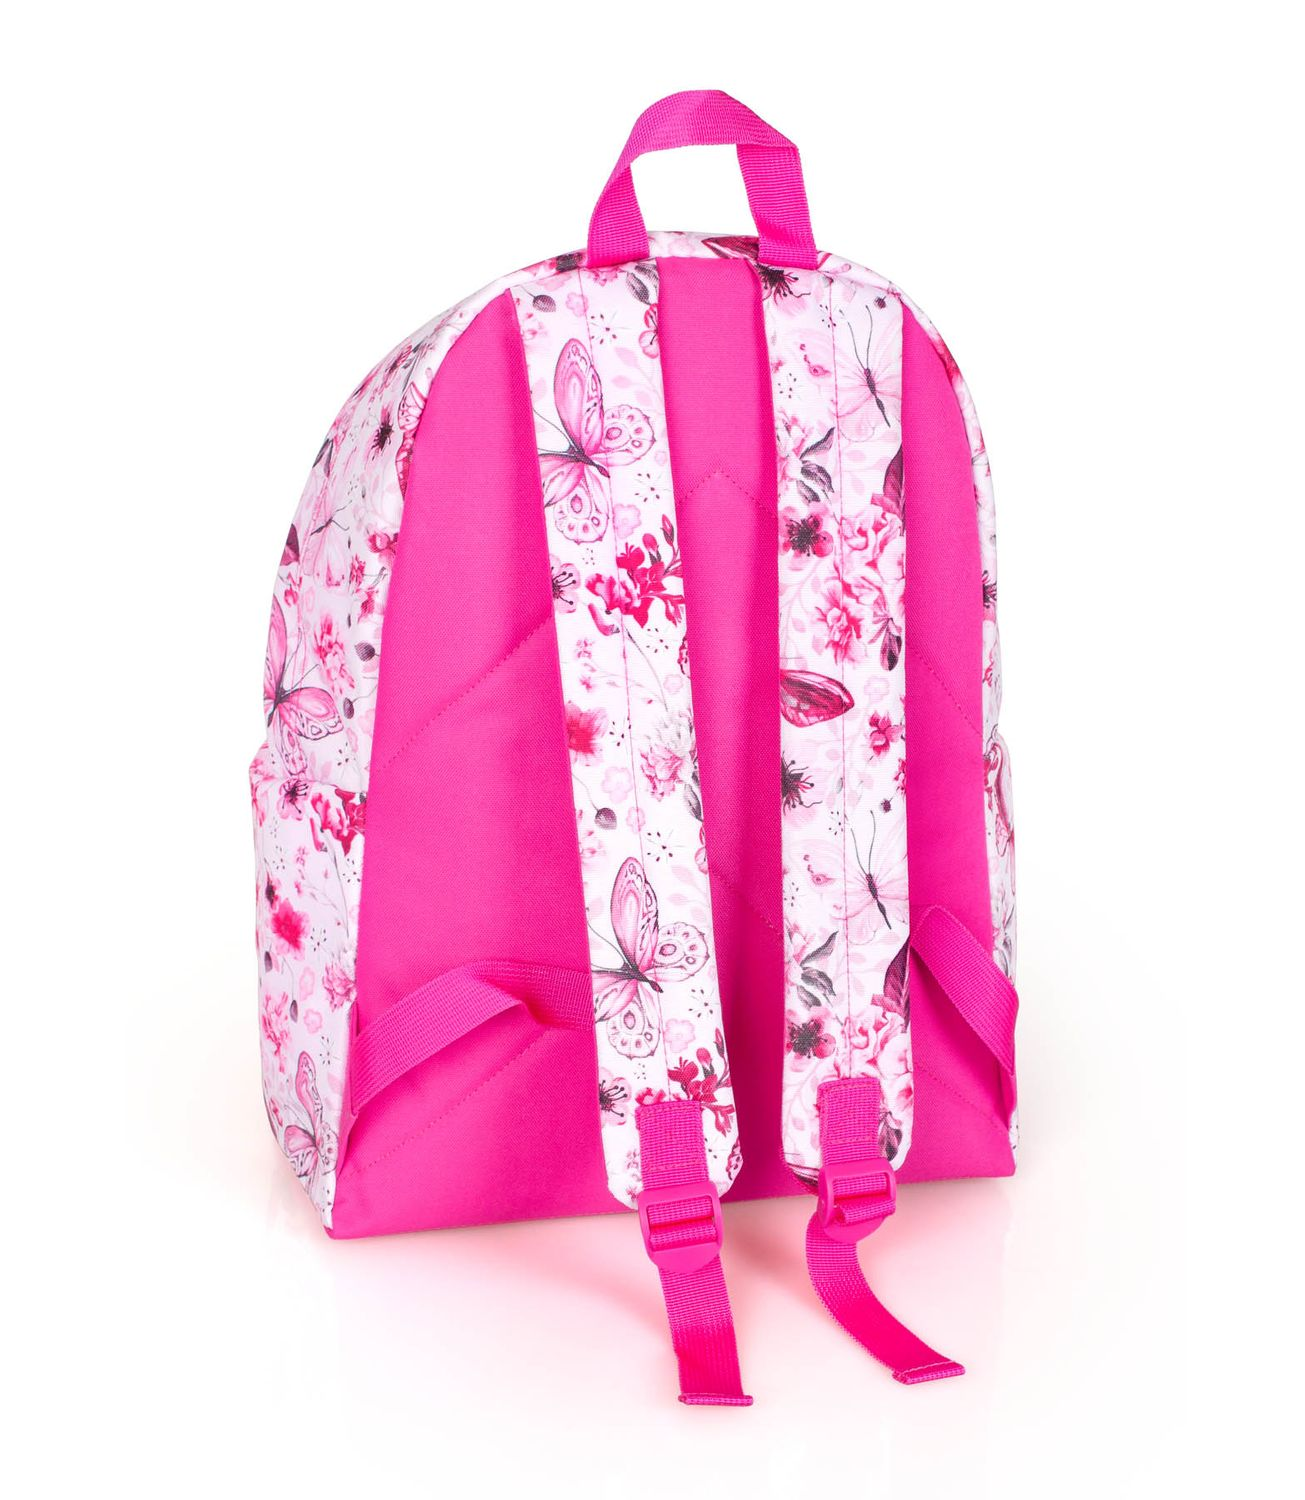 Backpack Rucksack BUTTERFLY PINK – image 2